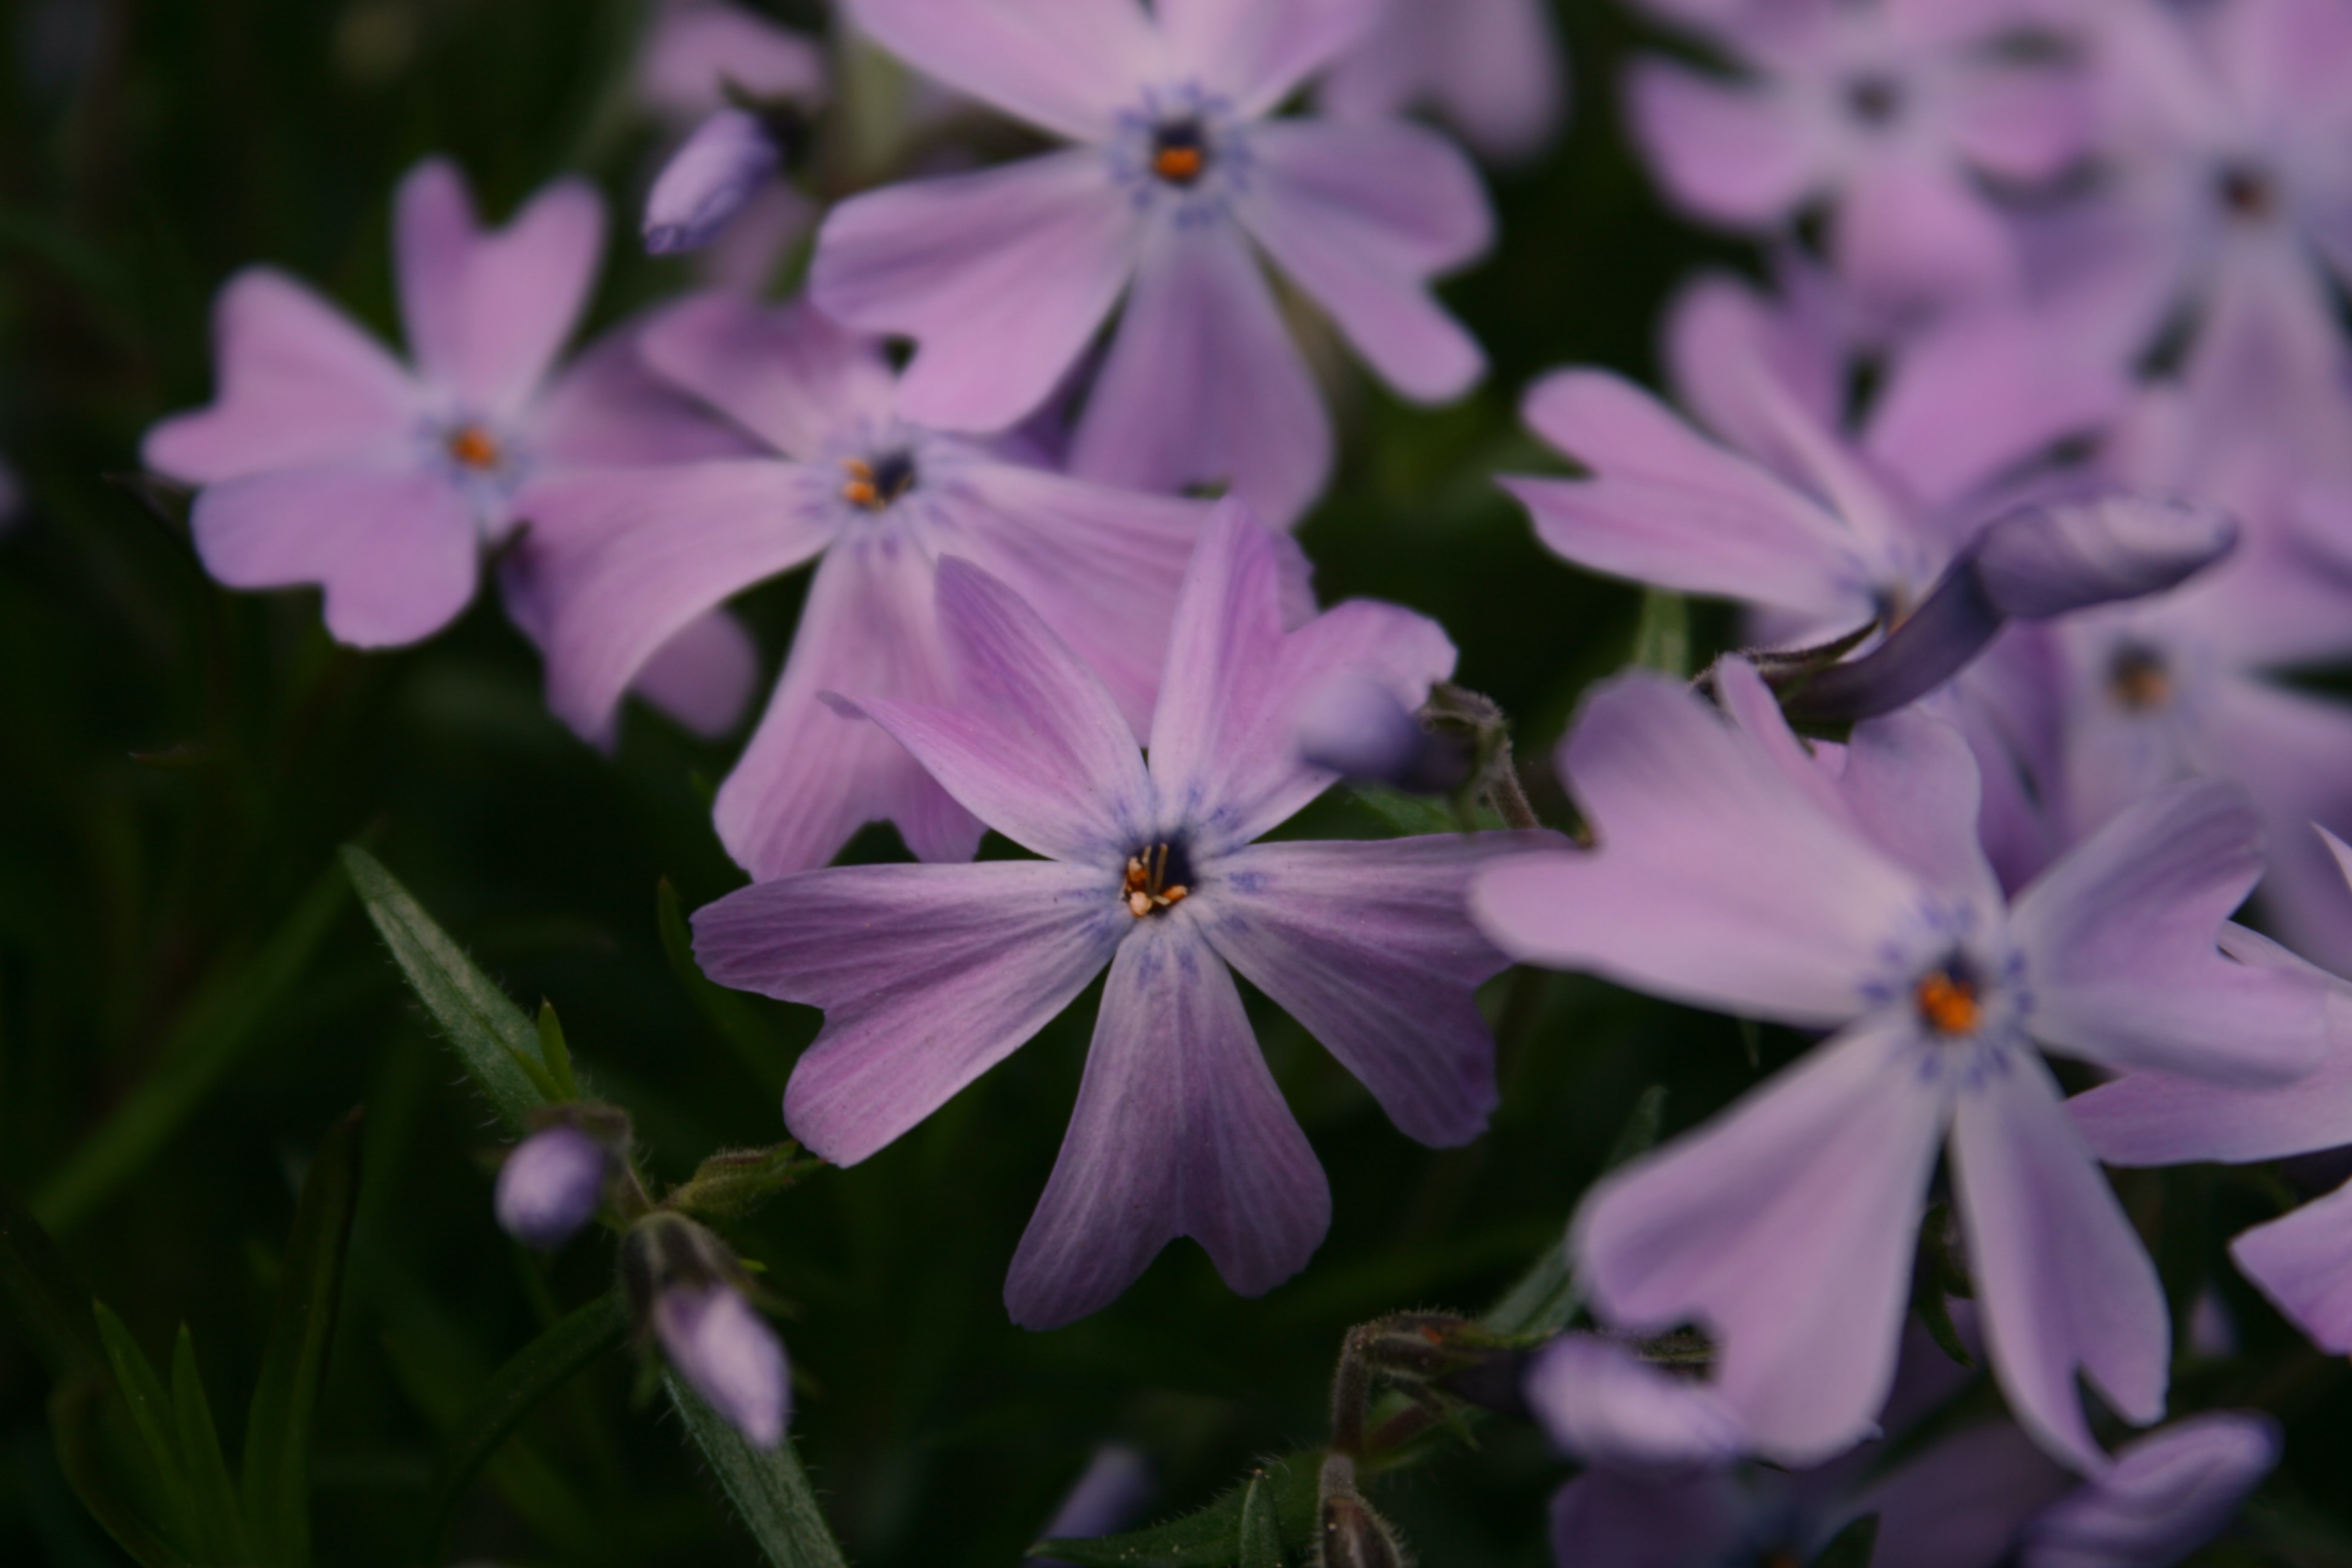 Close-up of light purple flowers with double petals